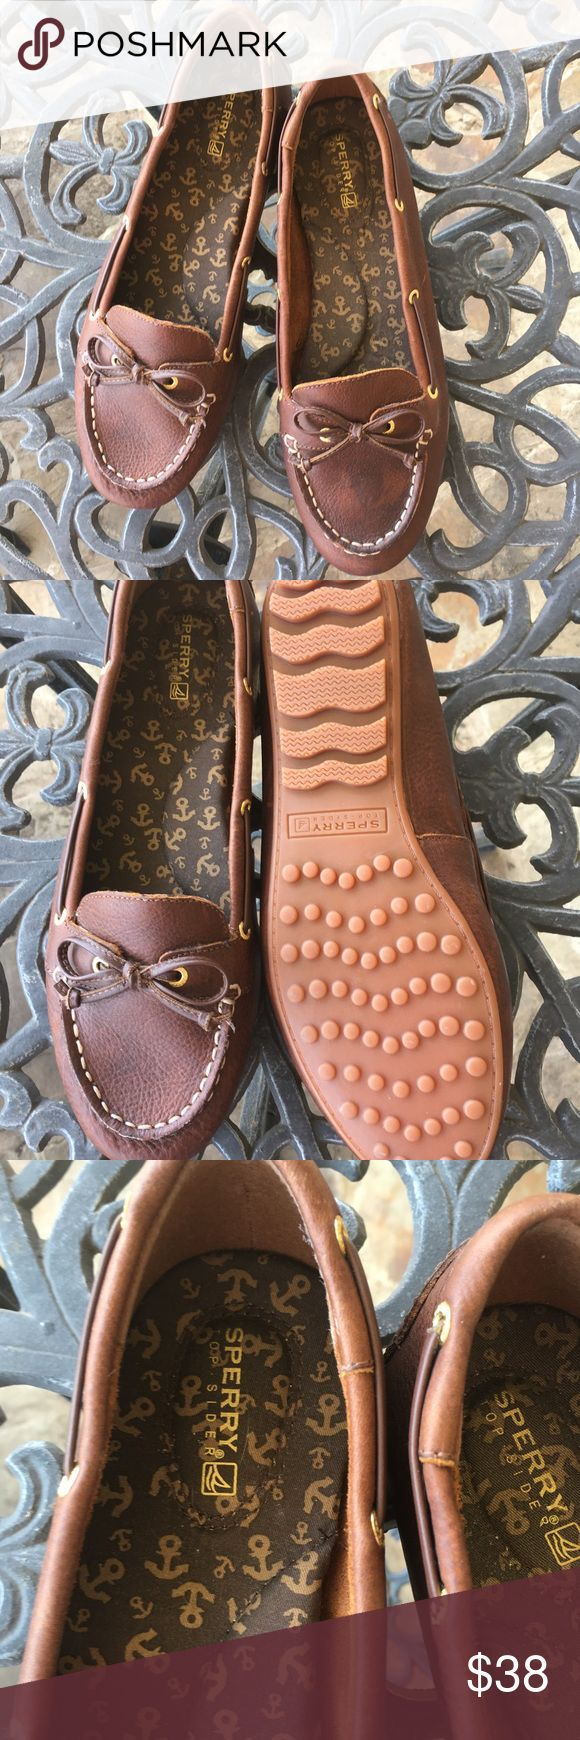 Leather Sperry Top Sider NWOT.  Never worn!  Stored in plastic shoebox.  8.5 m, leather upper. Sperry Top-Sider Shoes Flats & Loafers